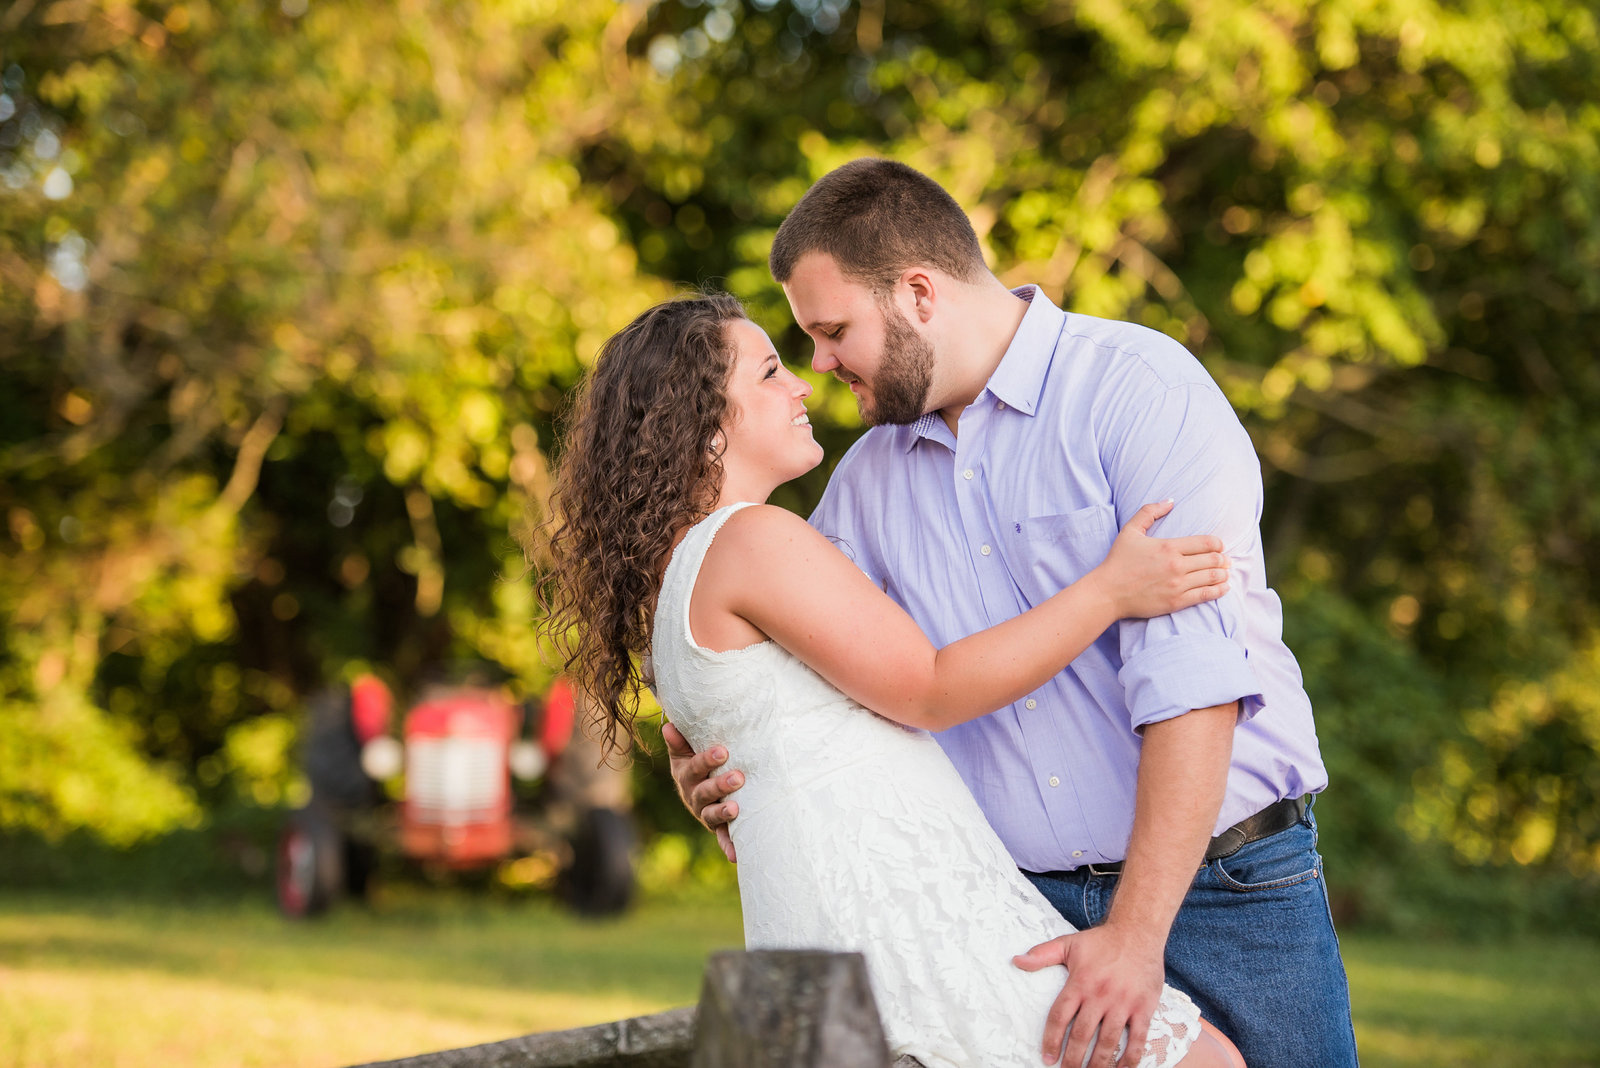 NJ_Rustic_Engagement_Photography057